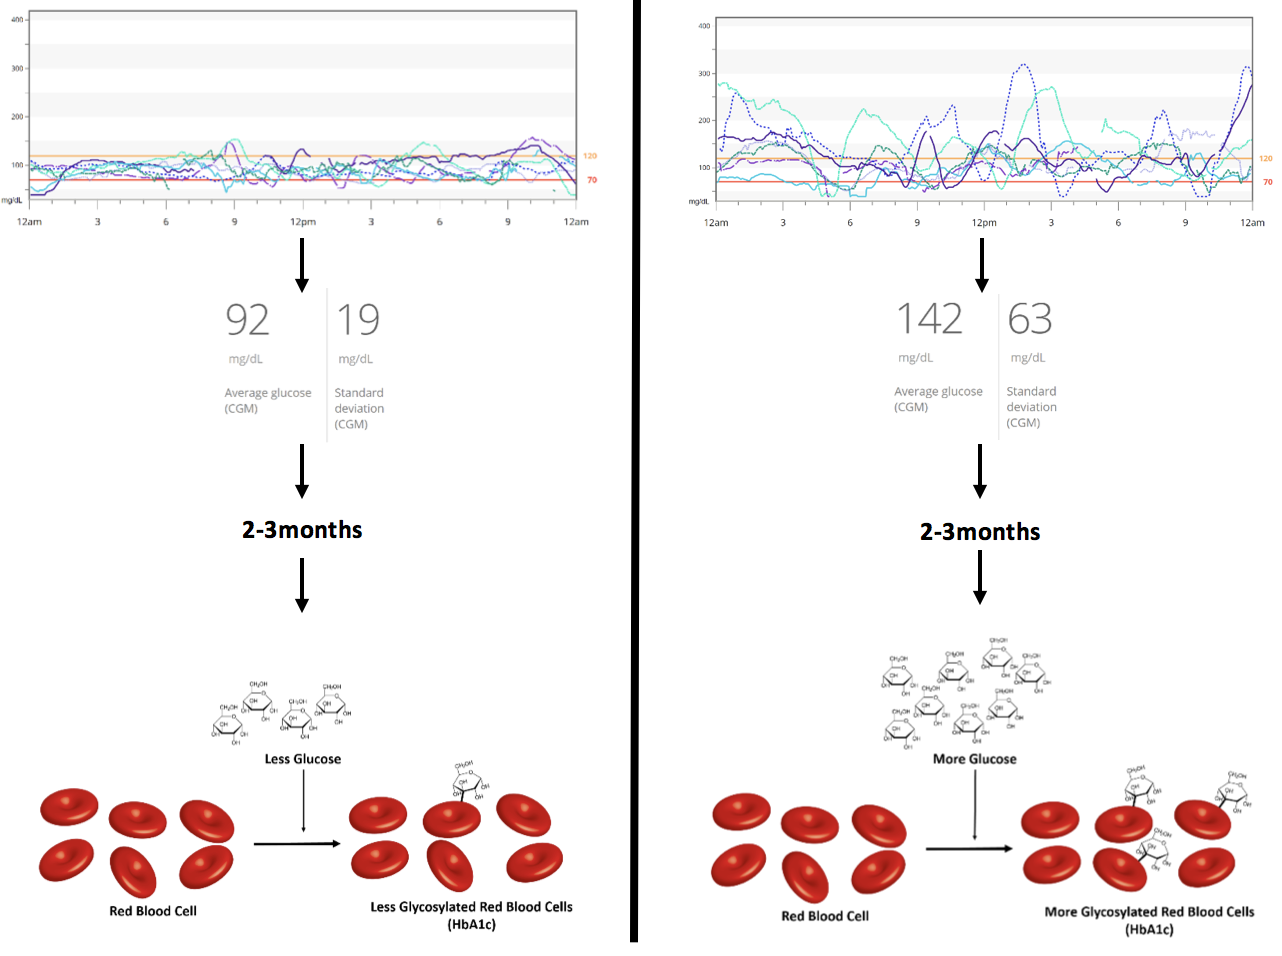 Figure 4 Daily Blood Glucose's Influence on HbA1c Levels.  With higher average blood glucose values, HbA1c increases